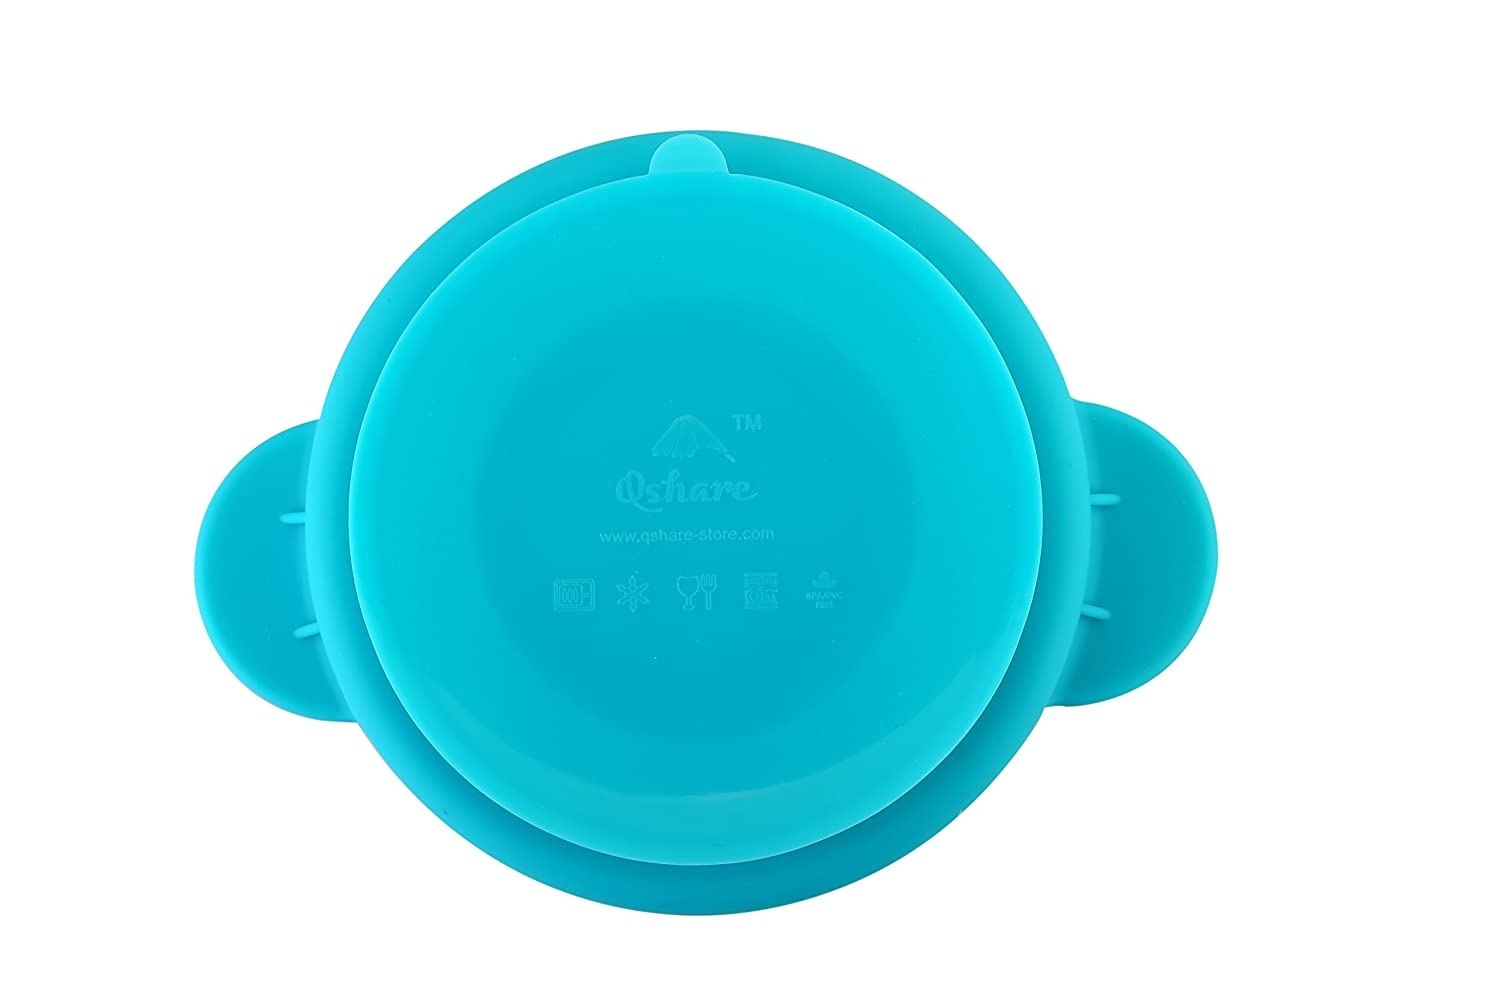 BPA-Free FDA Approved Strong Suction Plates for Toddlers Little-Duck, Blue-Duck Dishwasher and Microwave Safe Silicone Placemat One-Piece Baby Plate for Toddlers and Kids Qshare Toddler Plates